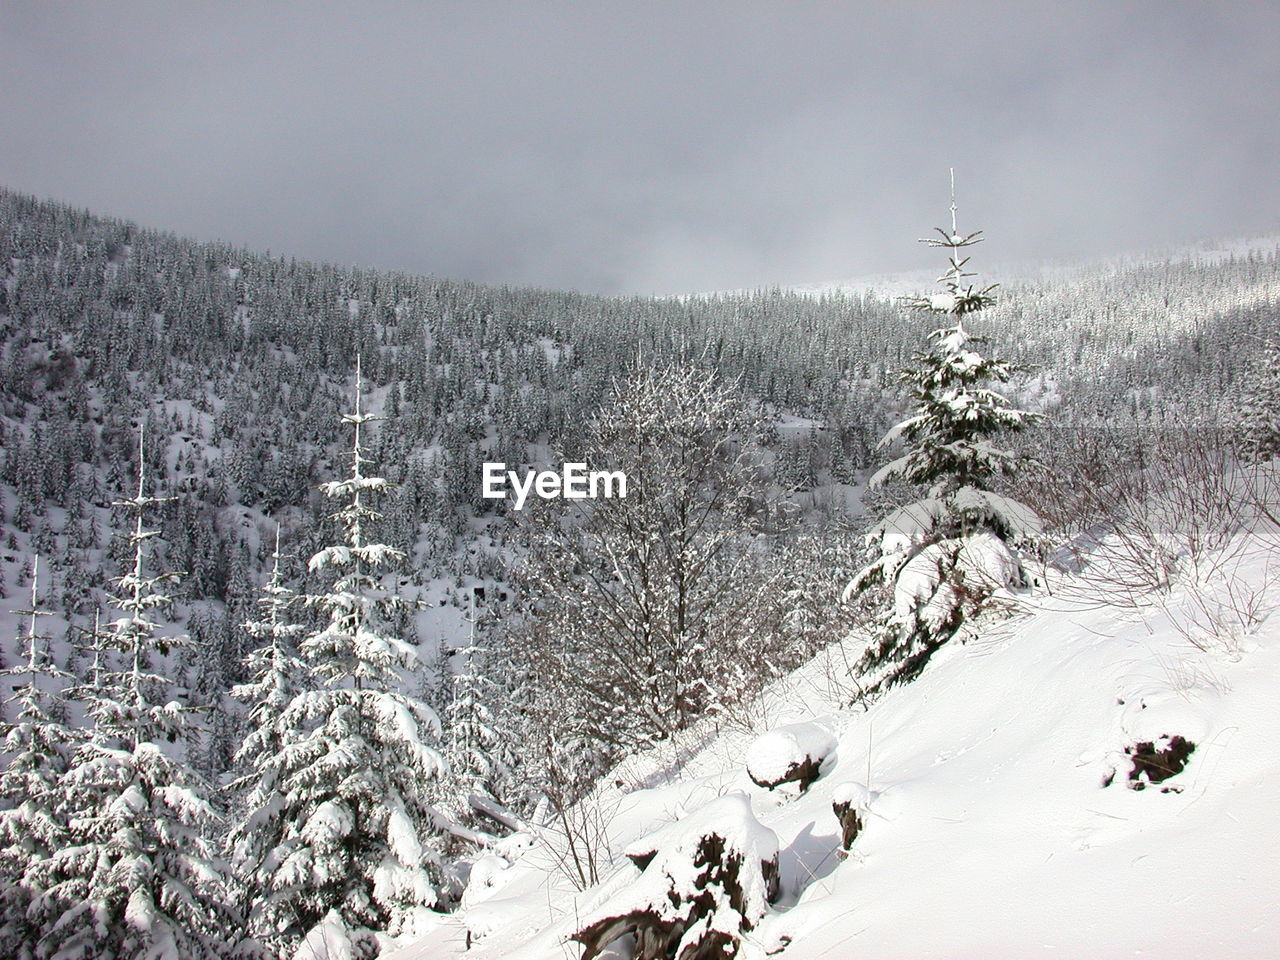 cold temperature, winter, snow, tree, covering, sky, beauty in nature, tranquility, plant, tranquil scene, nature, scenics - nature, non-urban scene, environment, land, day, mountain, white color, frozen, no people, outdoors, extreme weather, snowcapped mountain